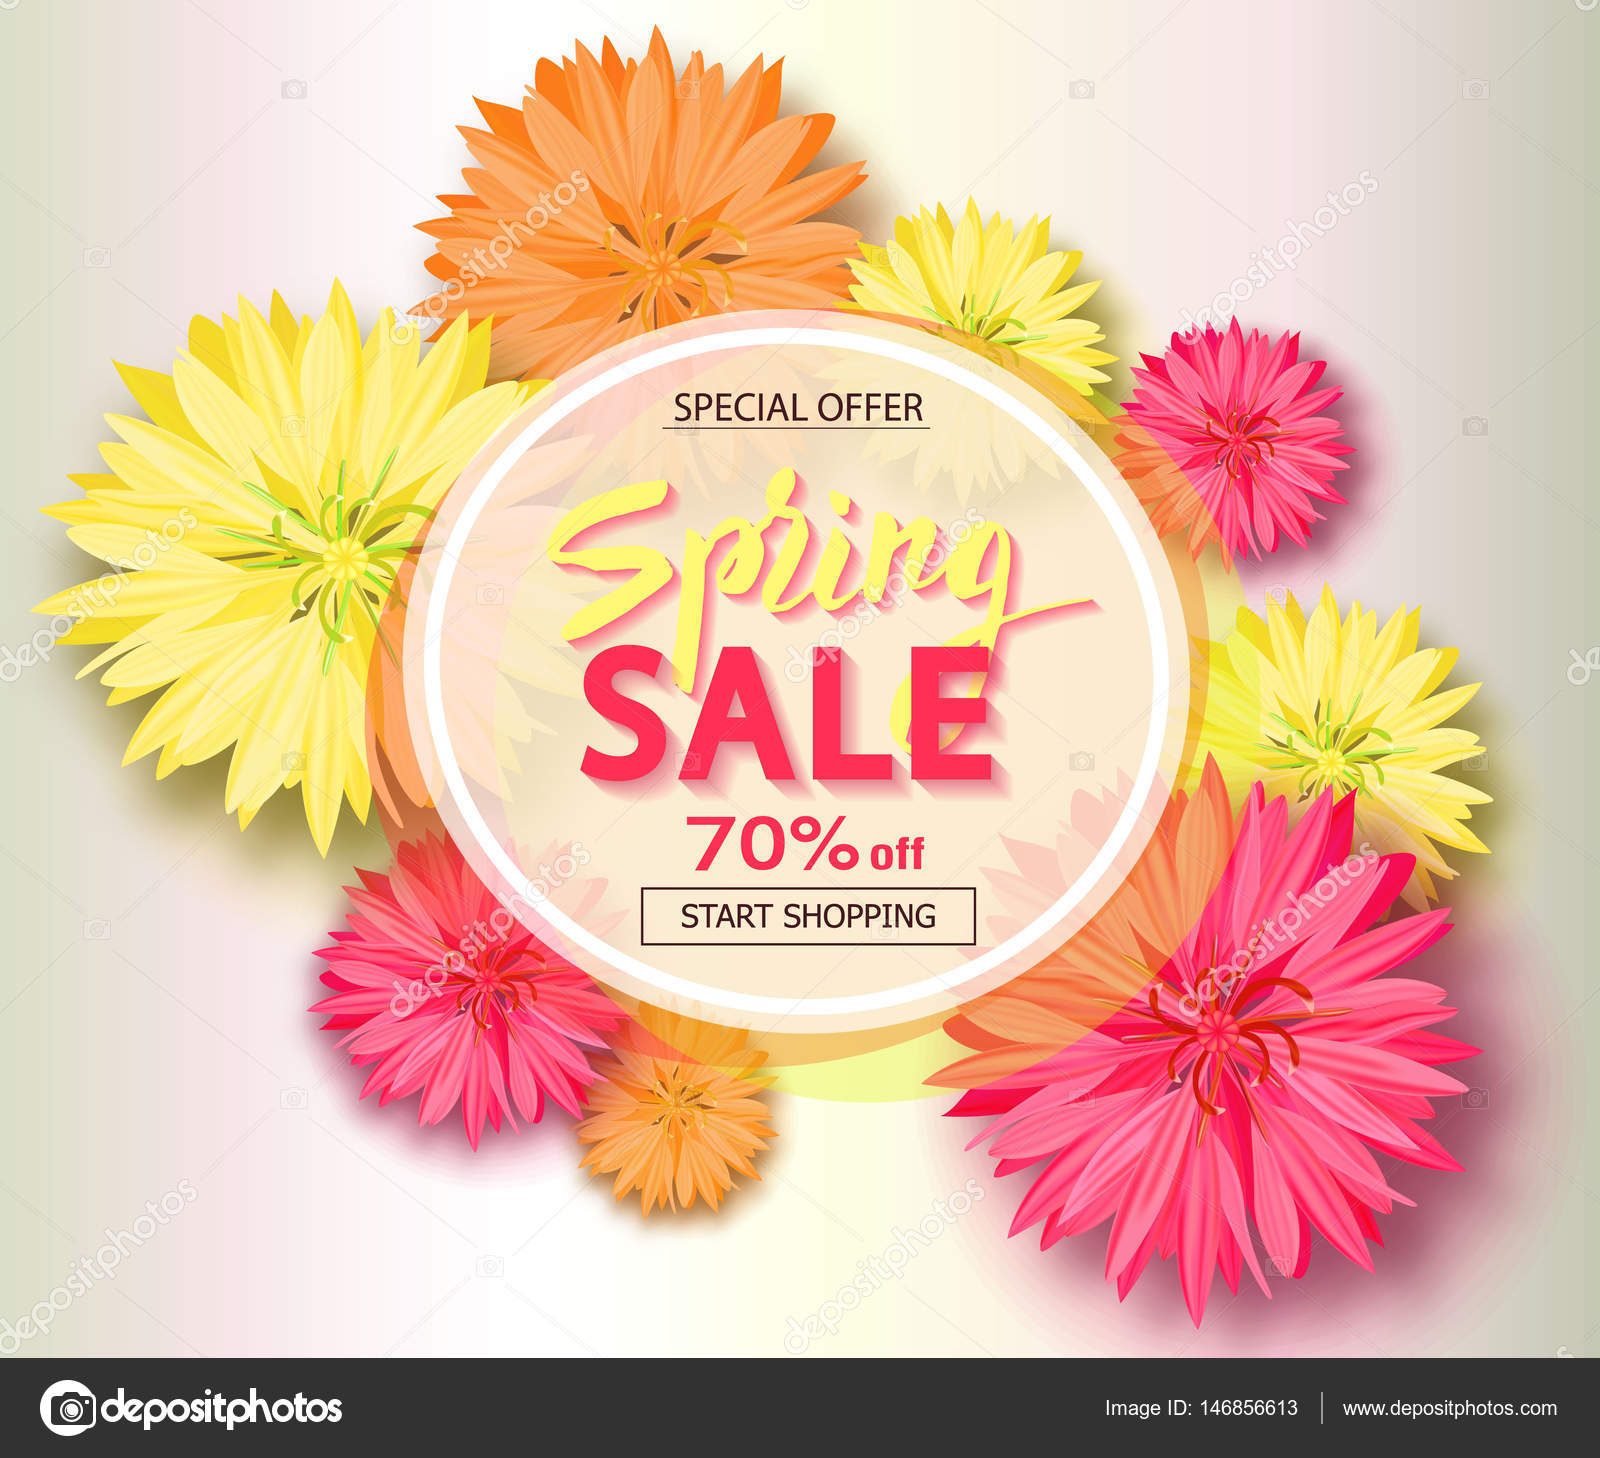 Spring Sale Background With Flowers Season Discount Banner Vector Illustration Template Wallpaper